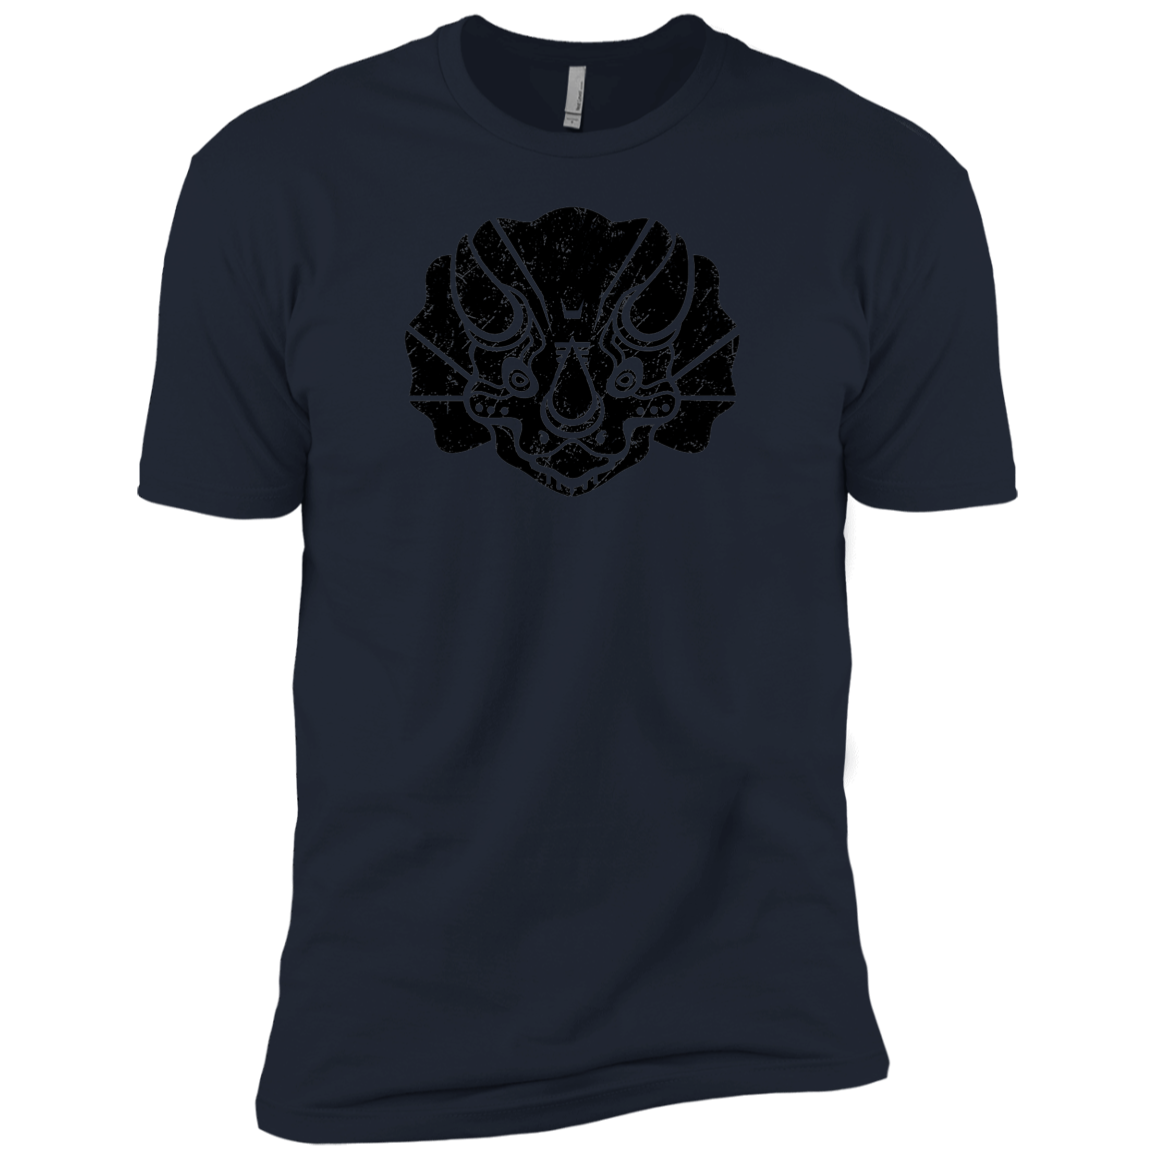 Black Distressed Emblem (Triceratops)